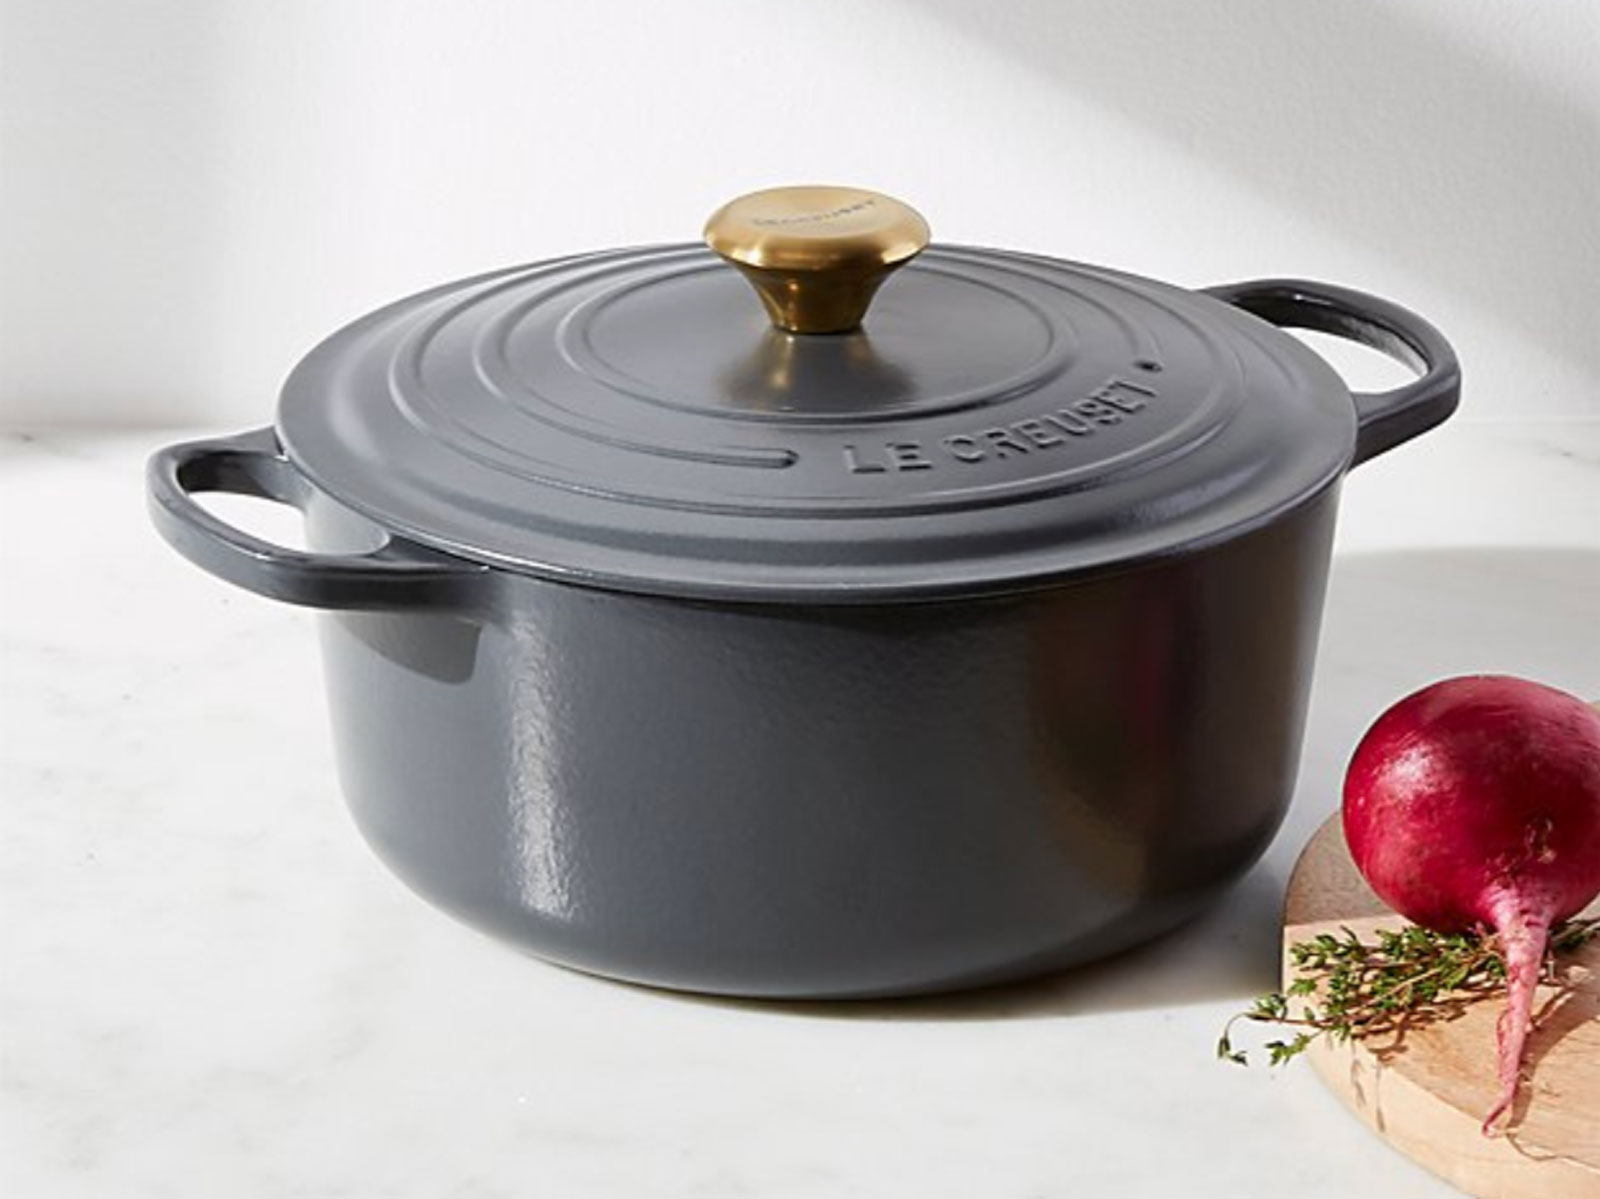 Le Creuset dutch oven in graphite grey on sale at crate & barrel